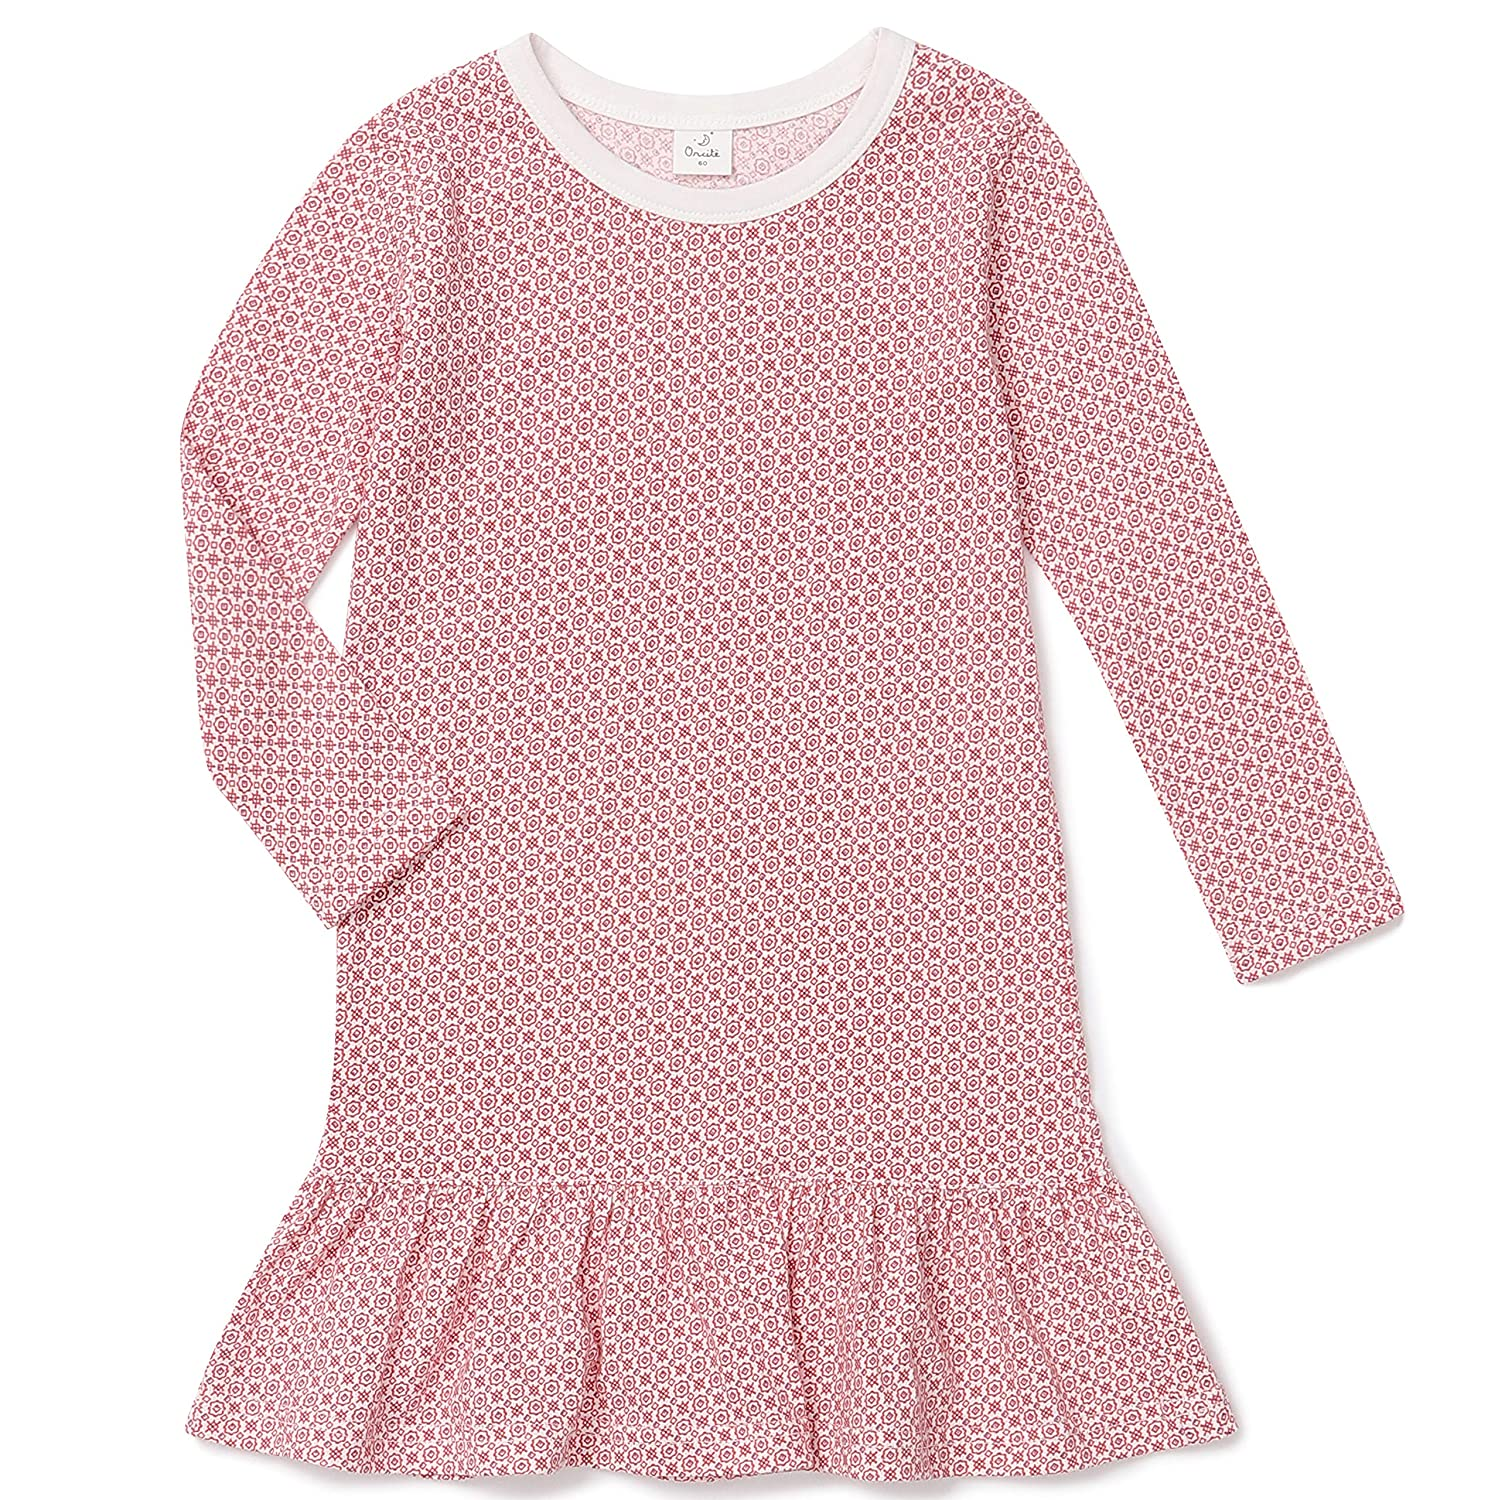 orcite Girls Kids Toddler Nightgown Cotton Cute Pajamas Princess Night Gown Size 2t 12 Years Long Sleeve